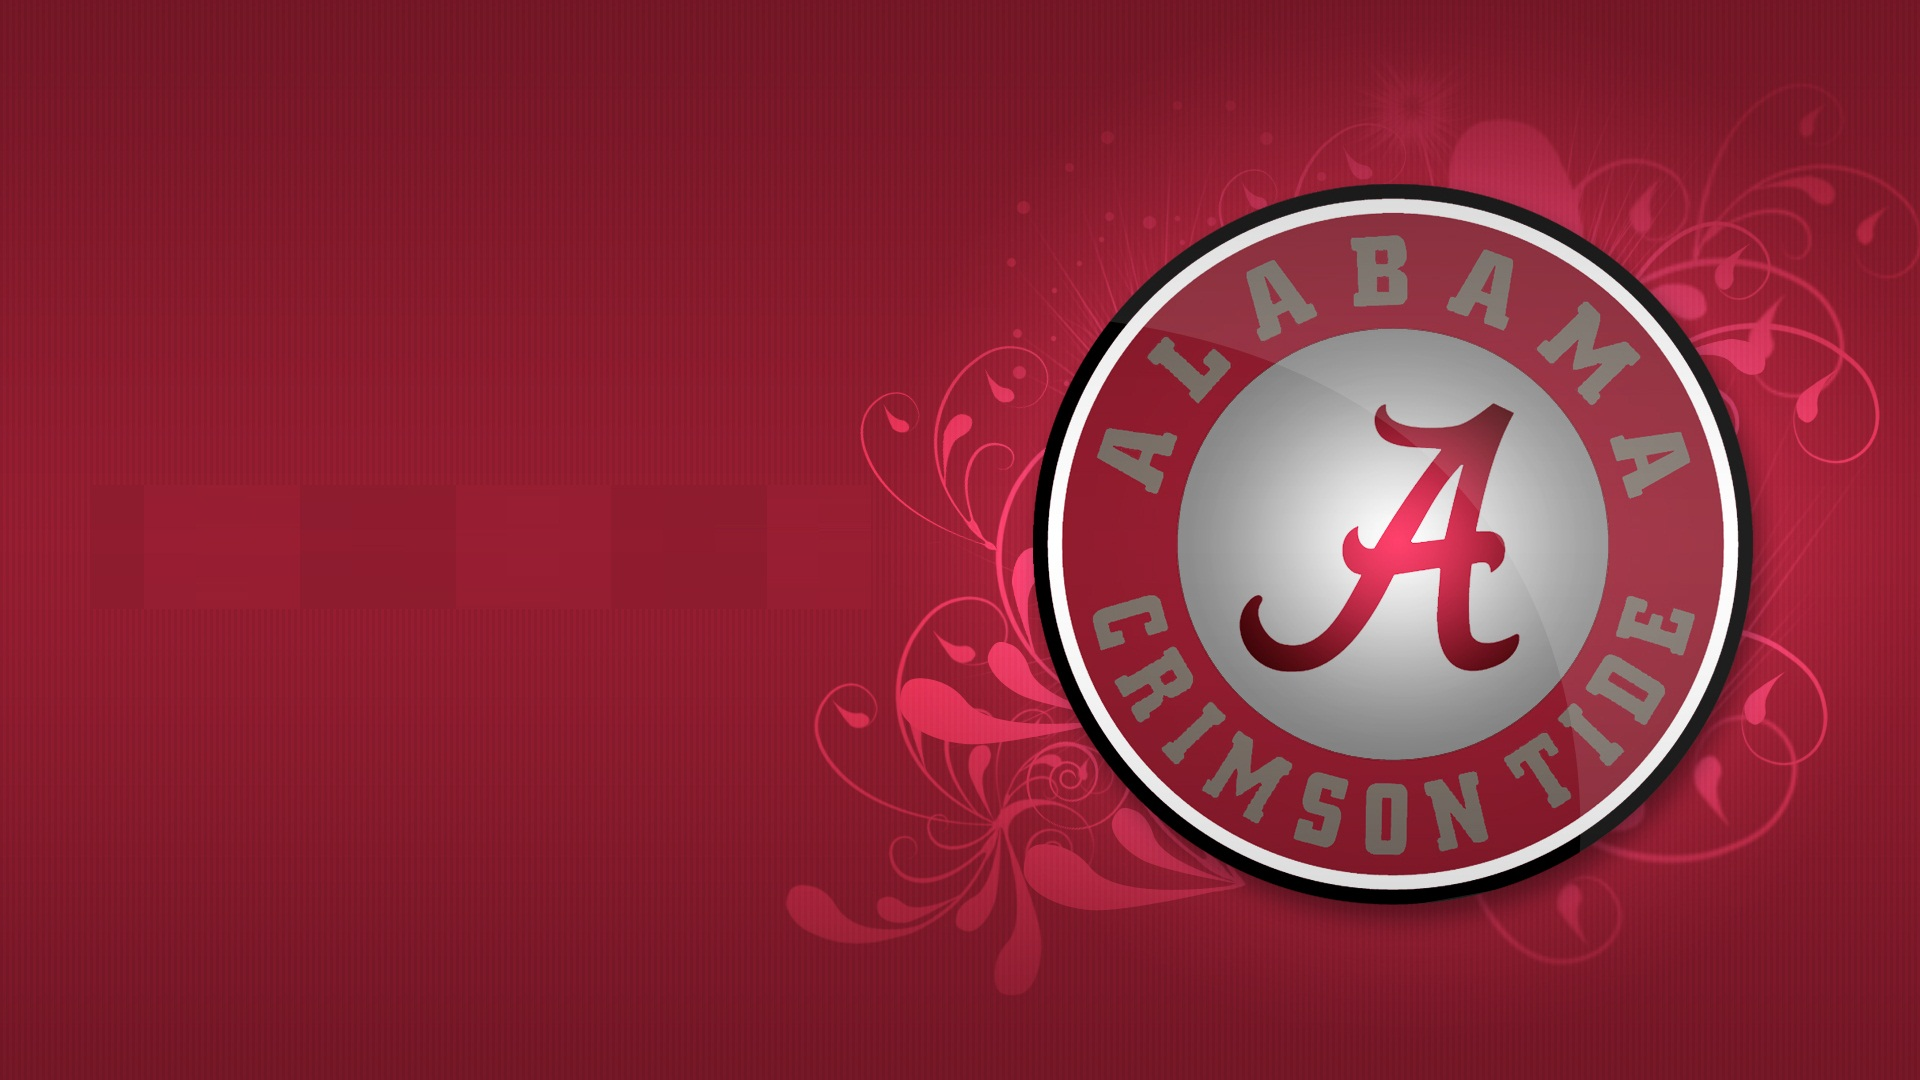 Football Wallpapers Alabama Football Wallpaper Desktop 1920x1080